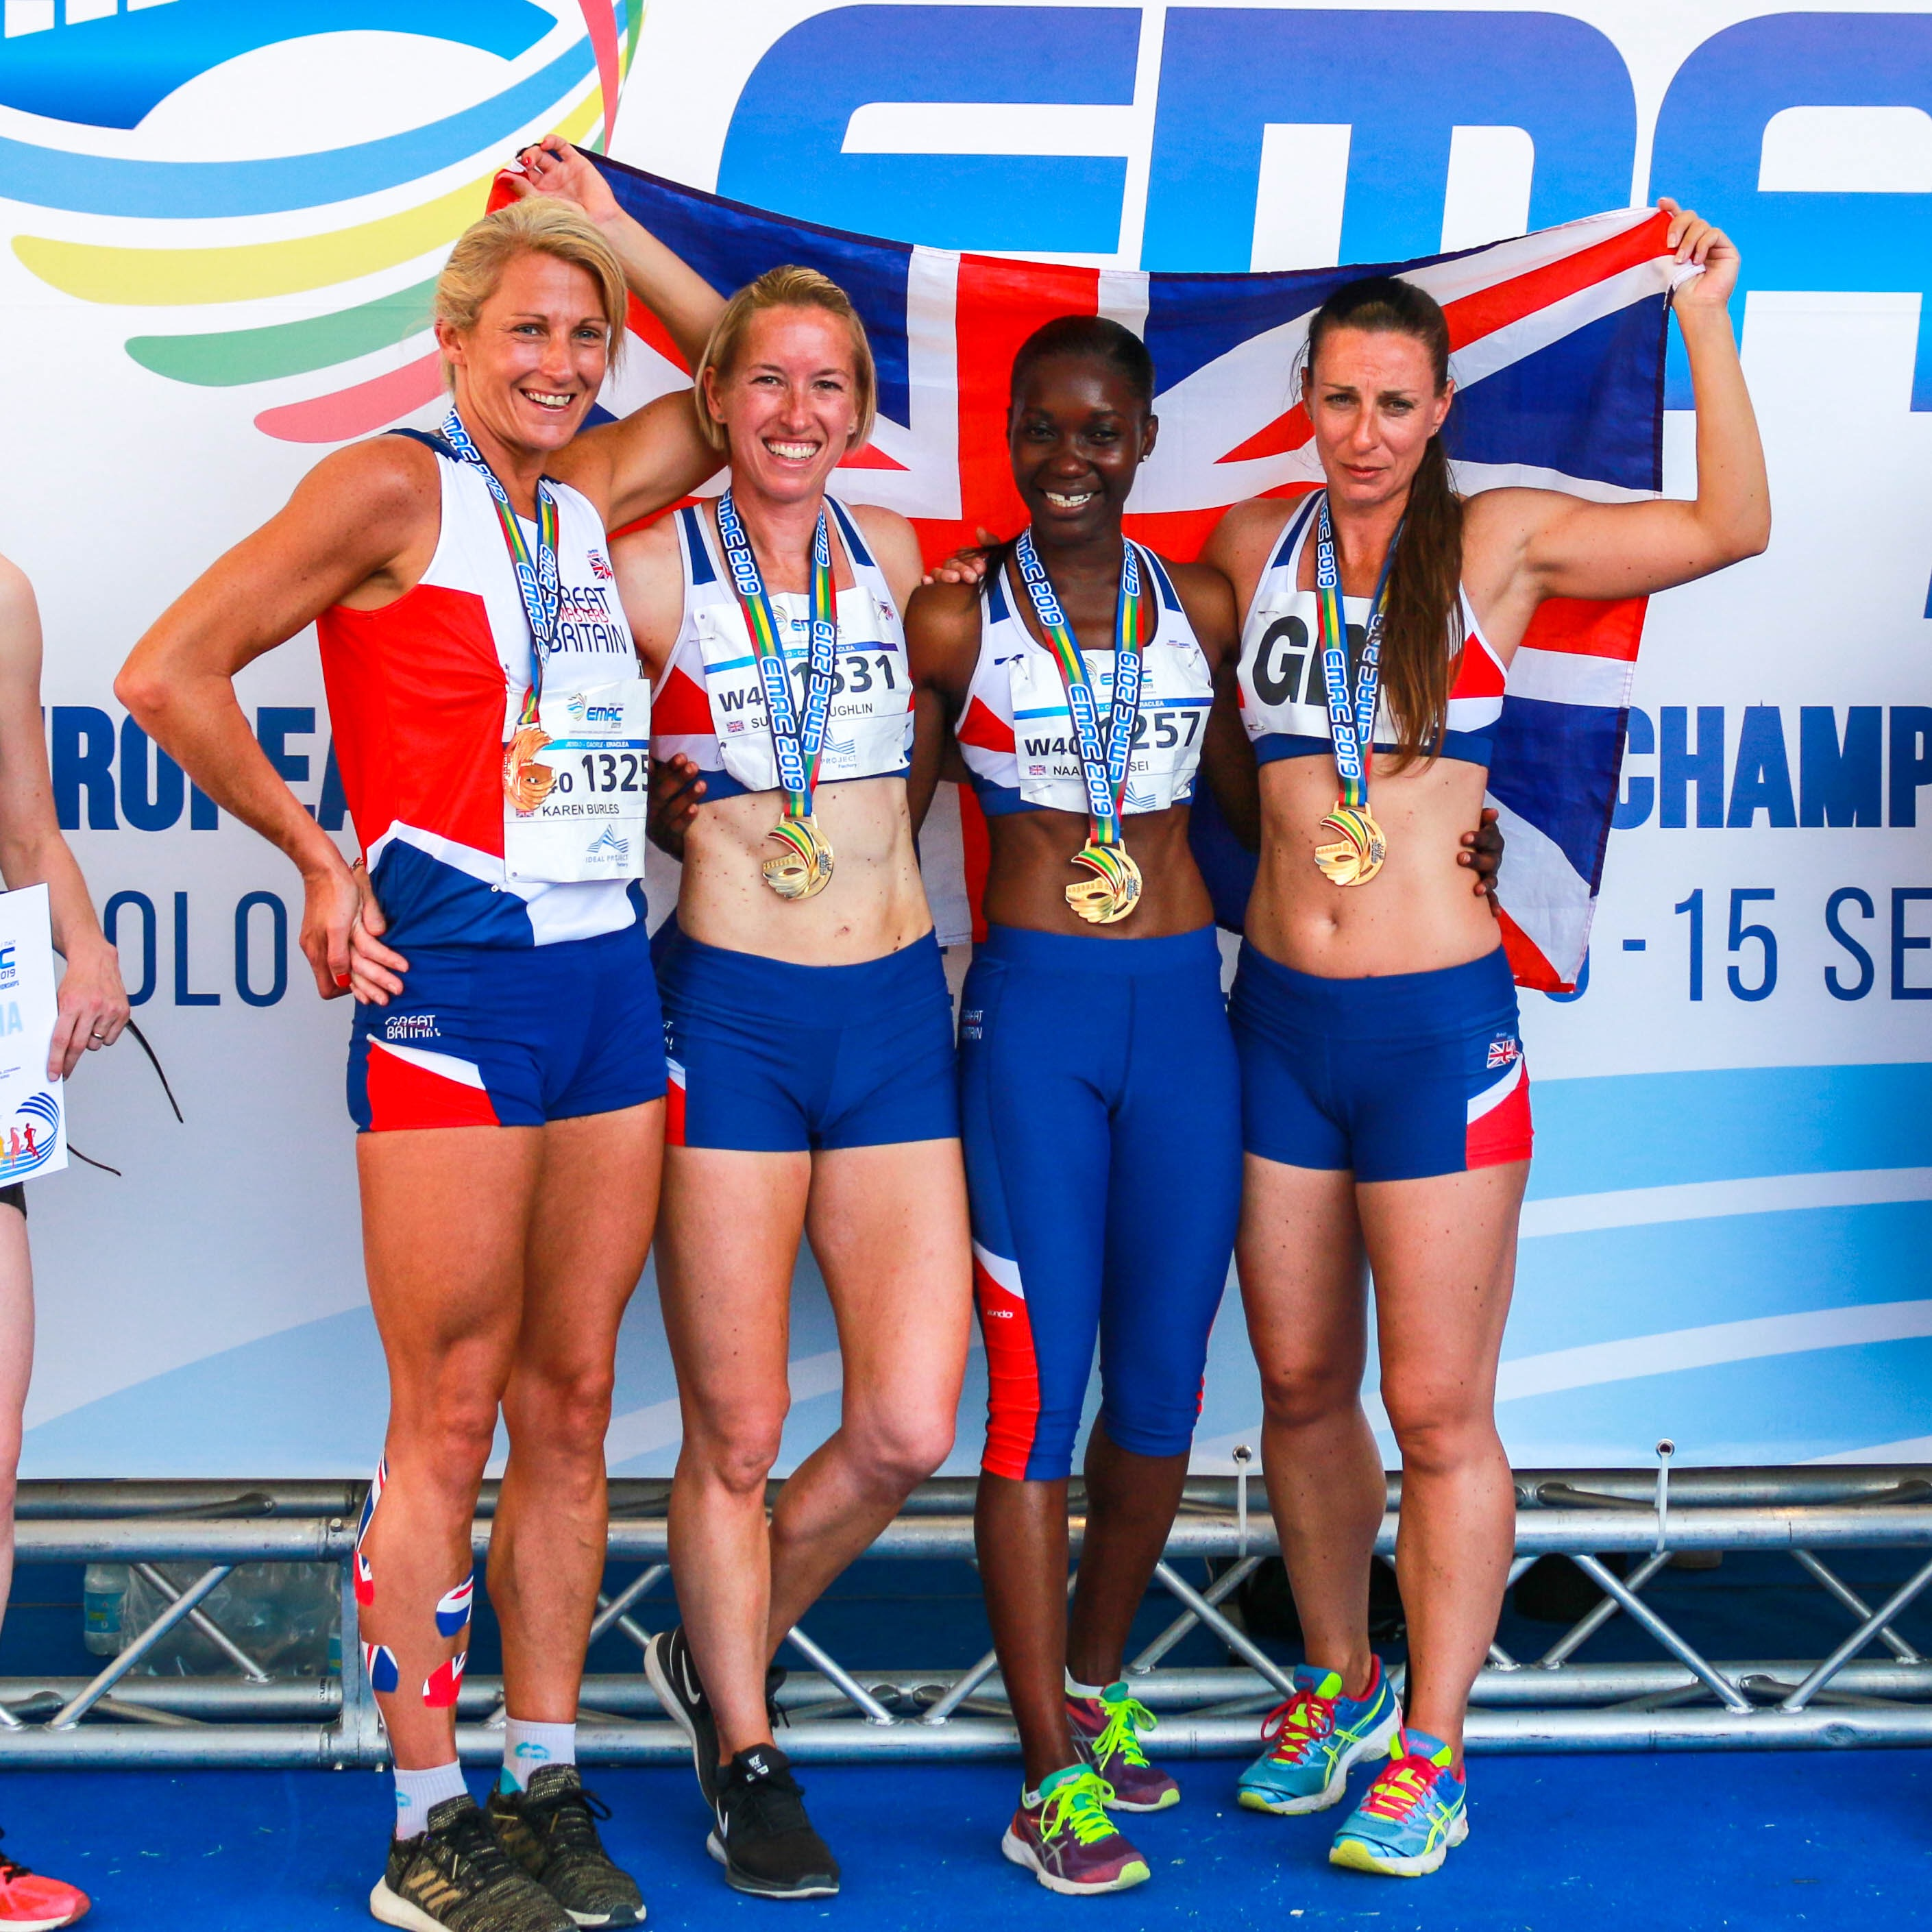 'Dream do come true! European Champions, British record holders and a Silver in the 4 x 400 m and 4th in the European 100m final. This is one running journey that will have no end.'